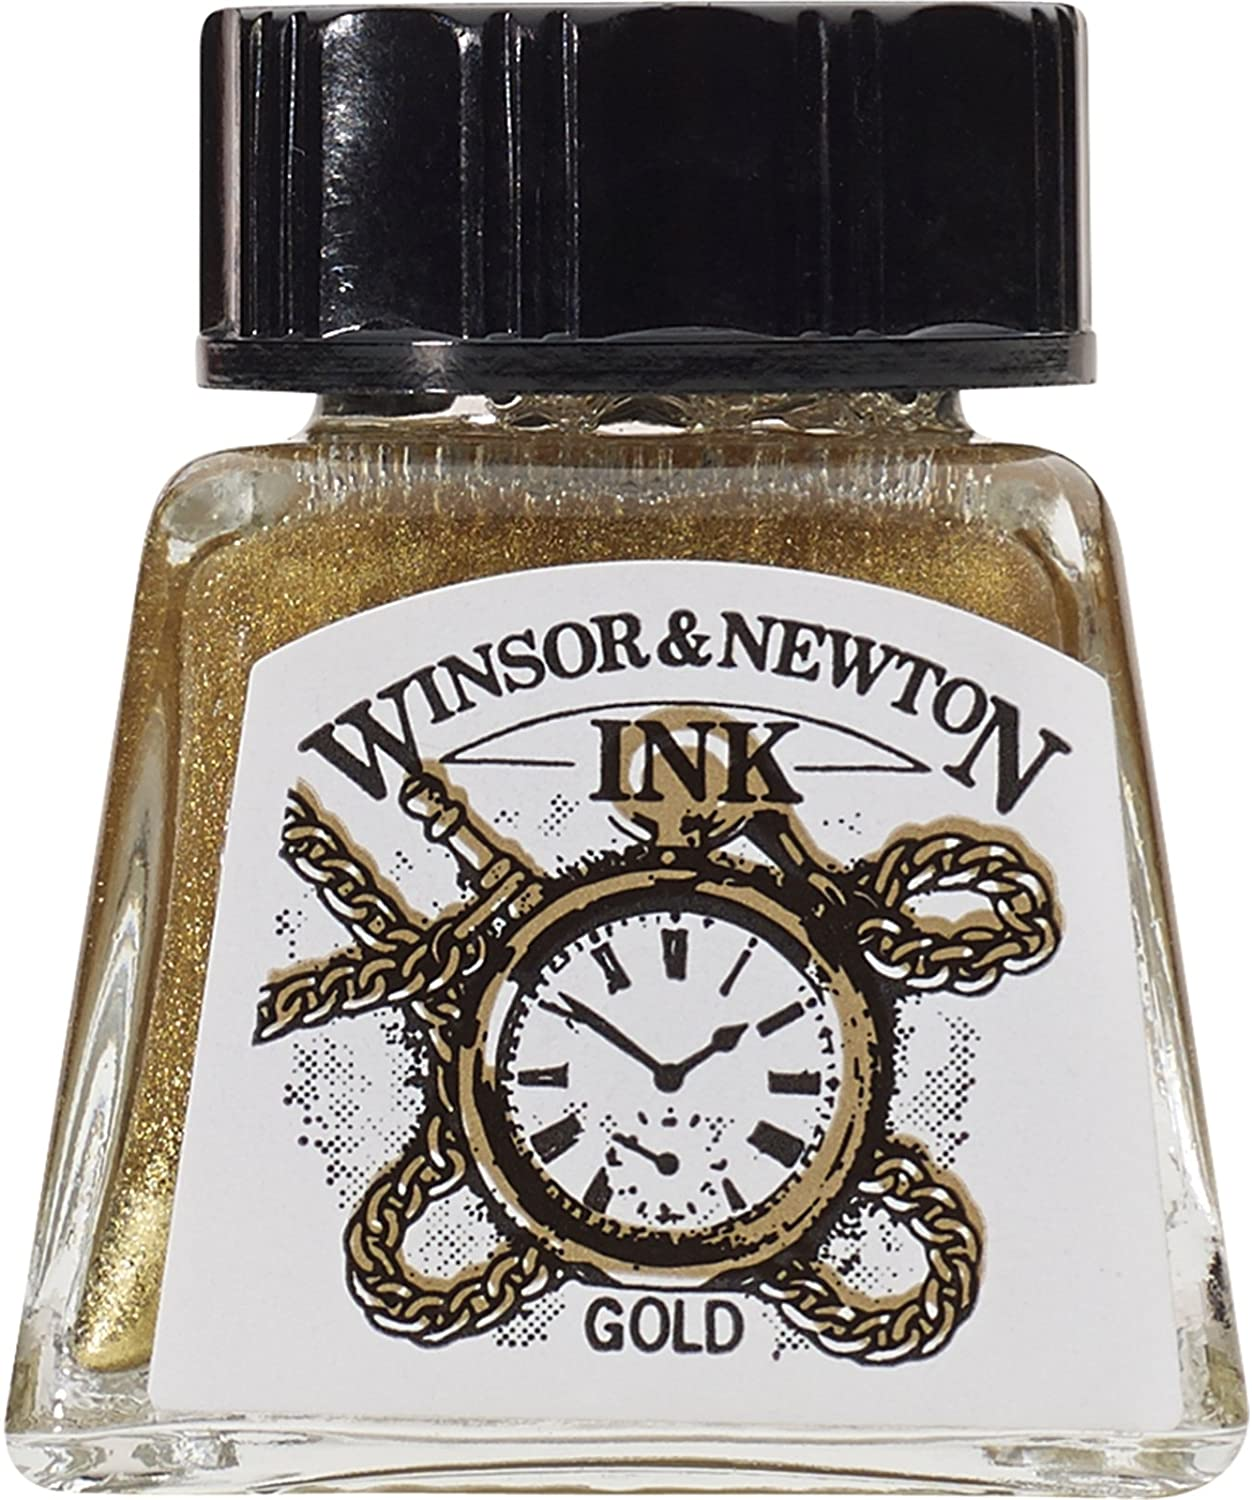 Winsor & Newton Drawing Ink Bottle, 14ml, Gold